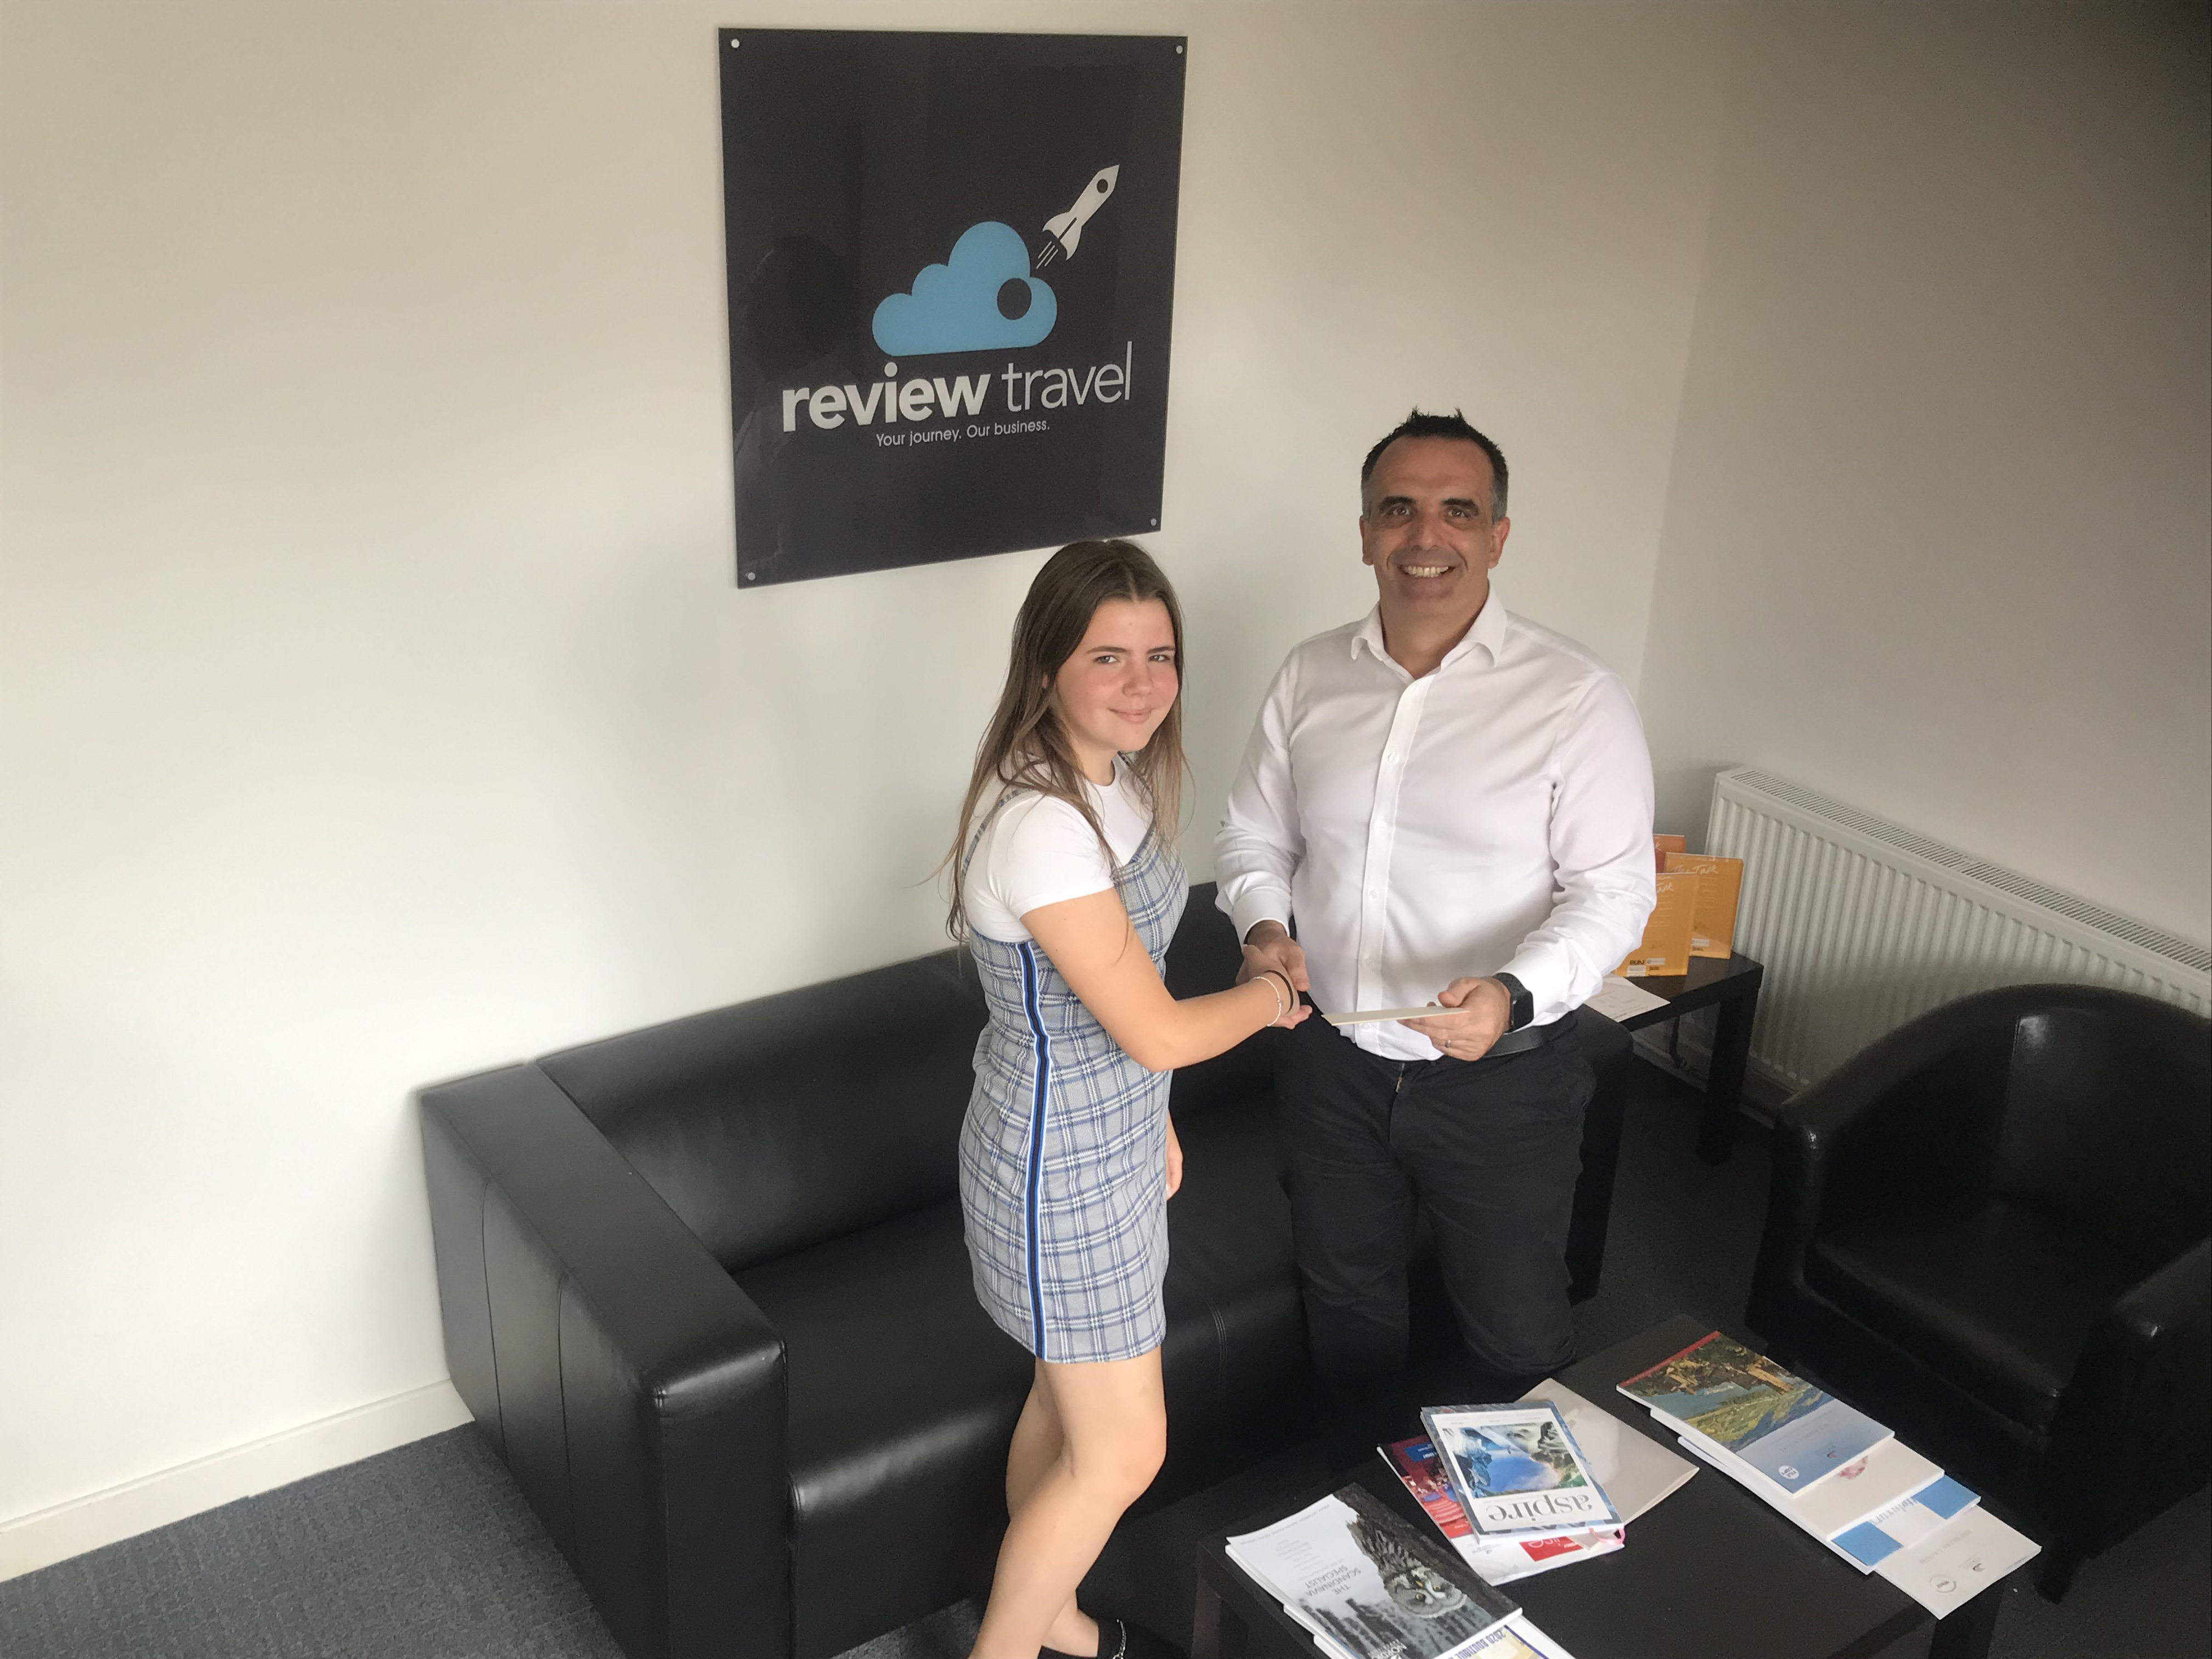 Review Travel CEO Christian Gleave and work experience student Freya